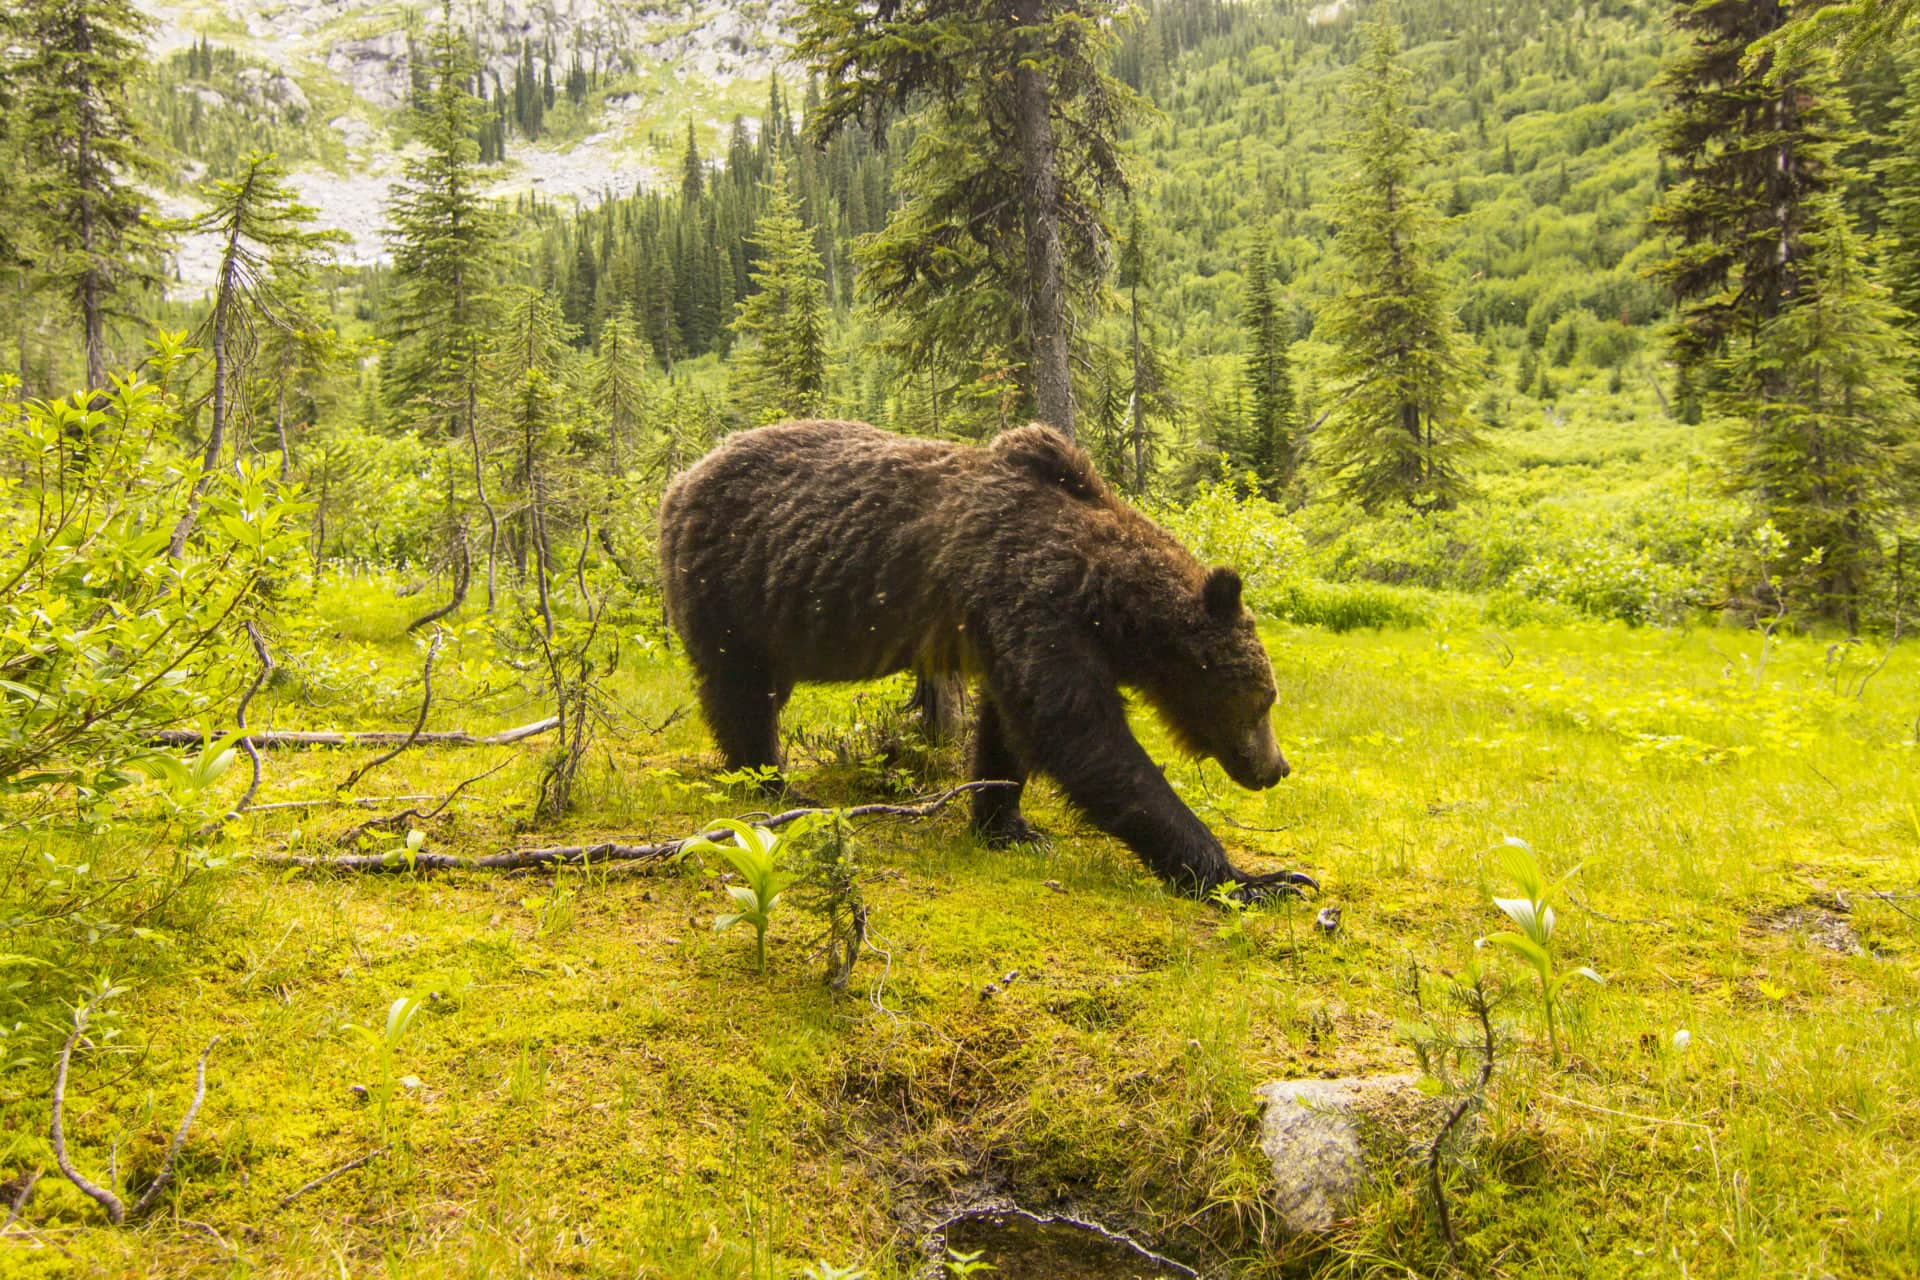 South Selkirk Grizzly Bear David Moskowitz